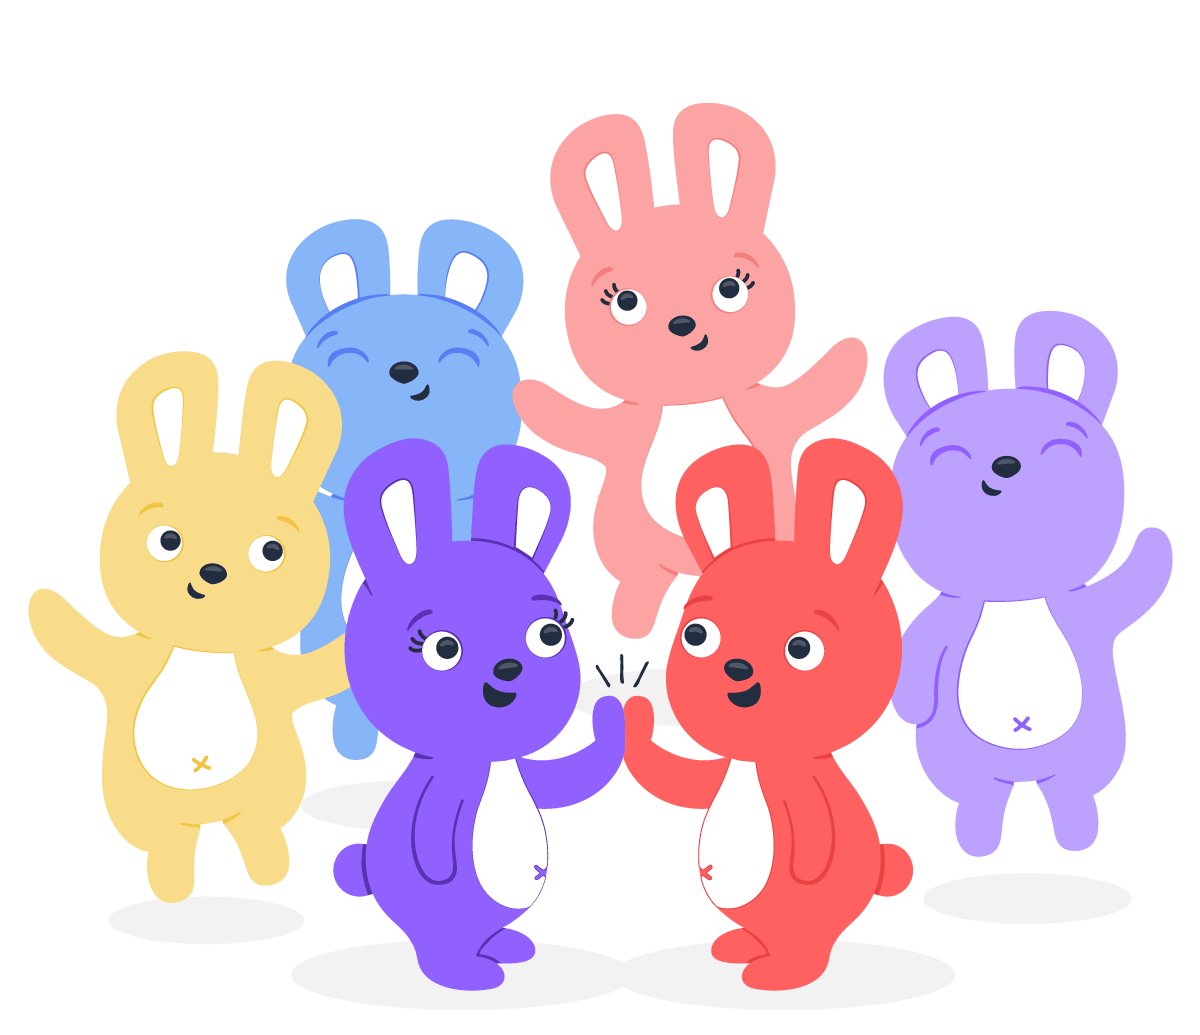 Six Hoppy bunnies jumping together in celebration of employee appreciation in their office